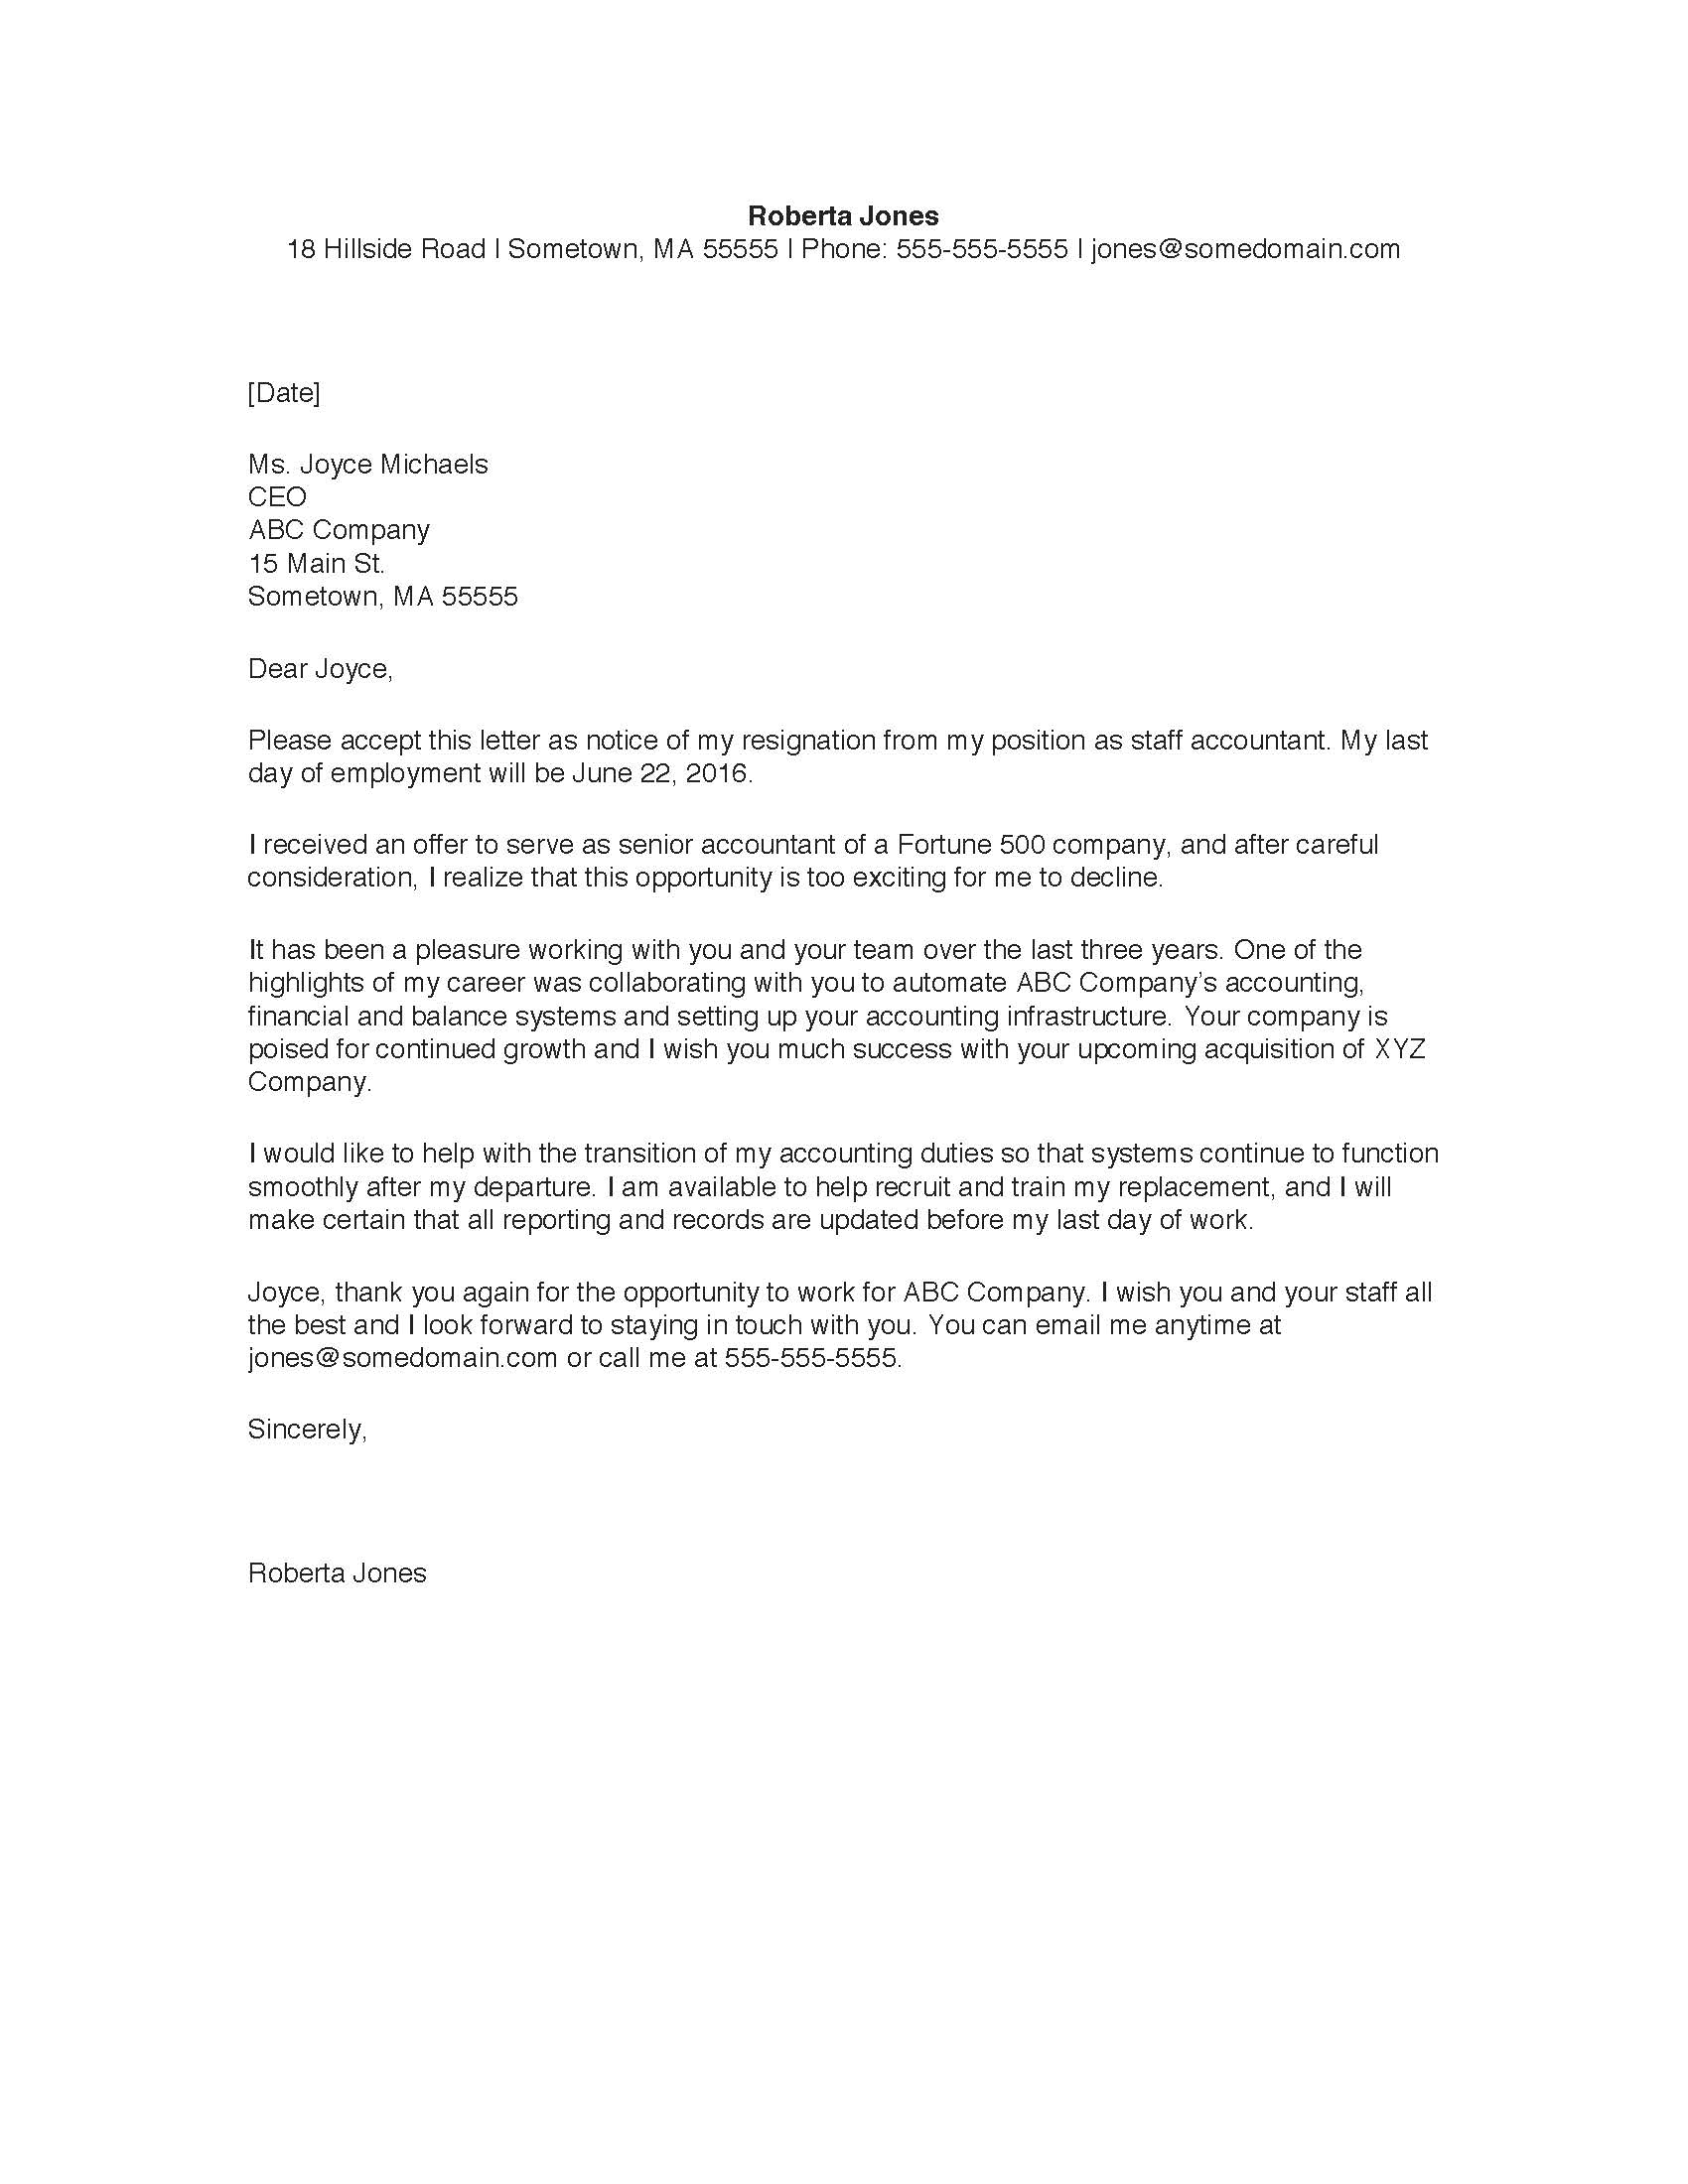 Amazing Sample Resignation Letter